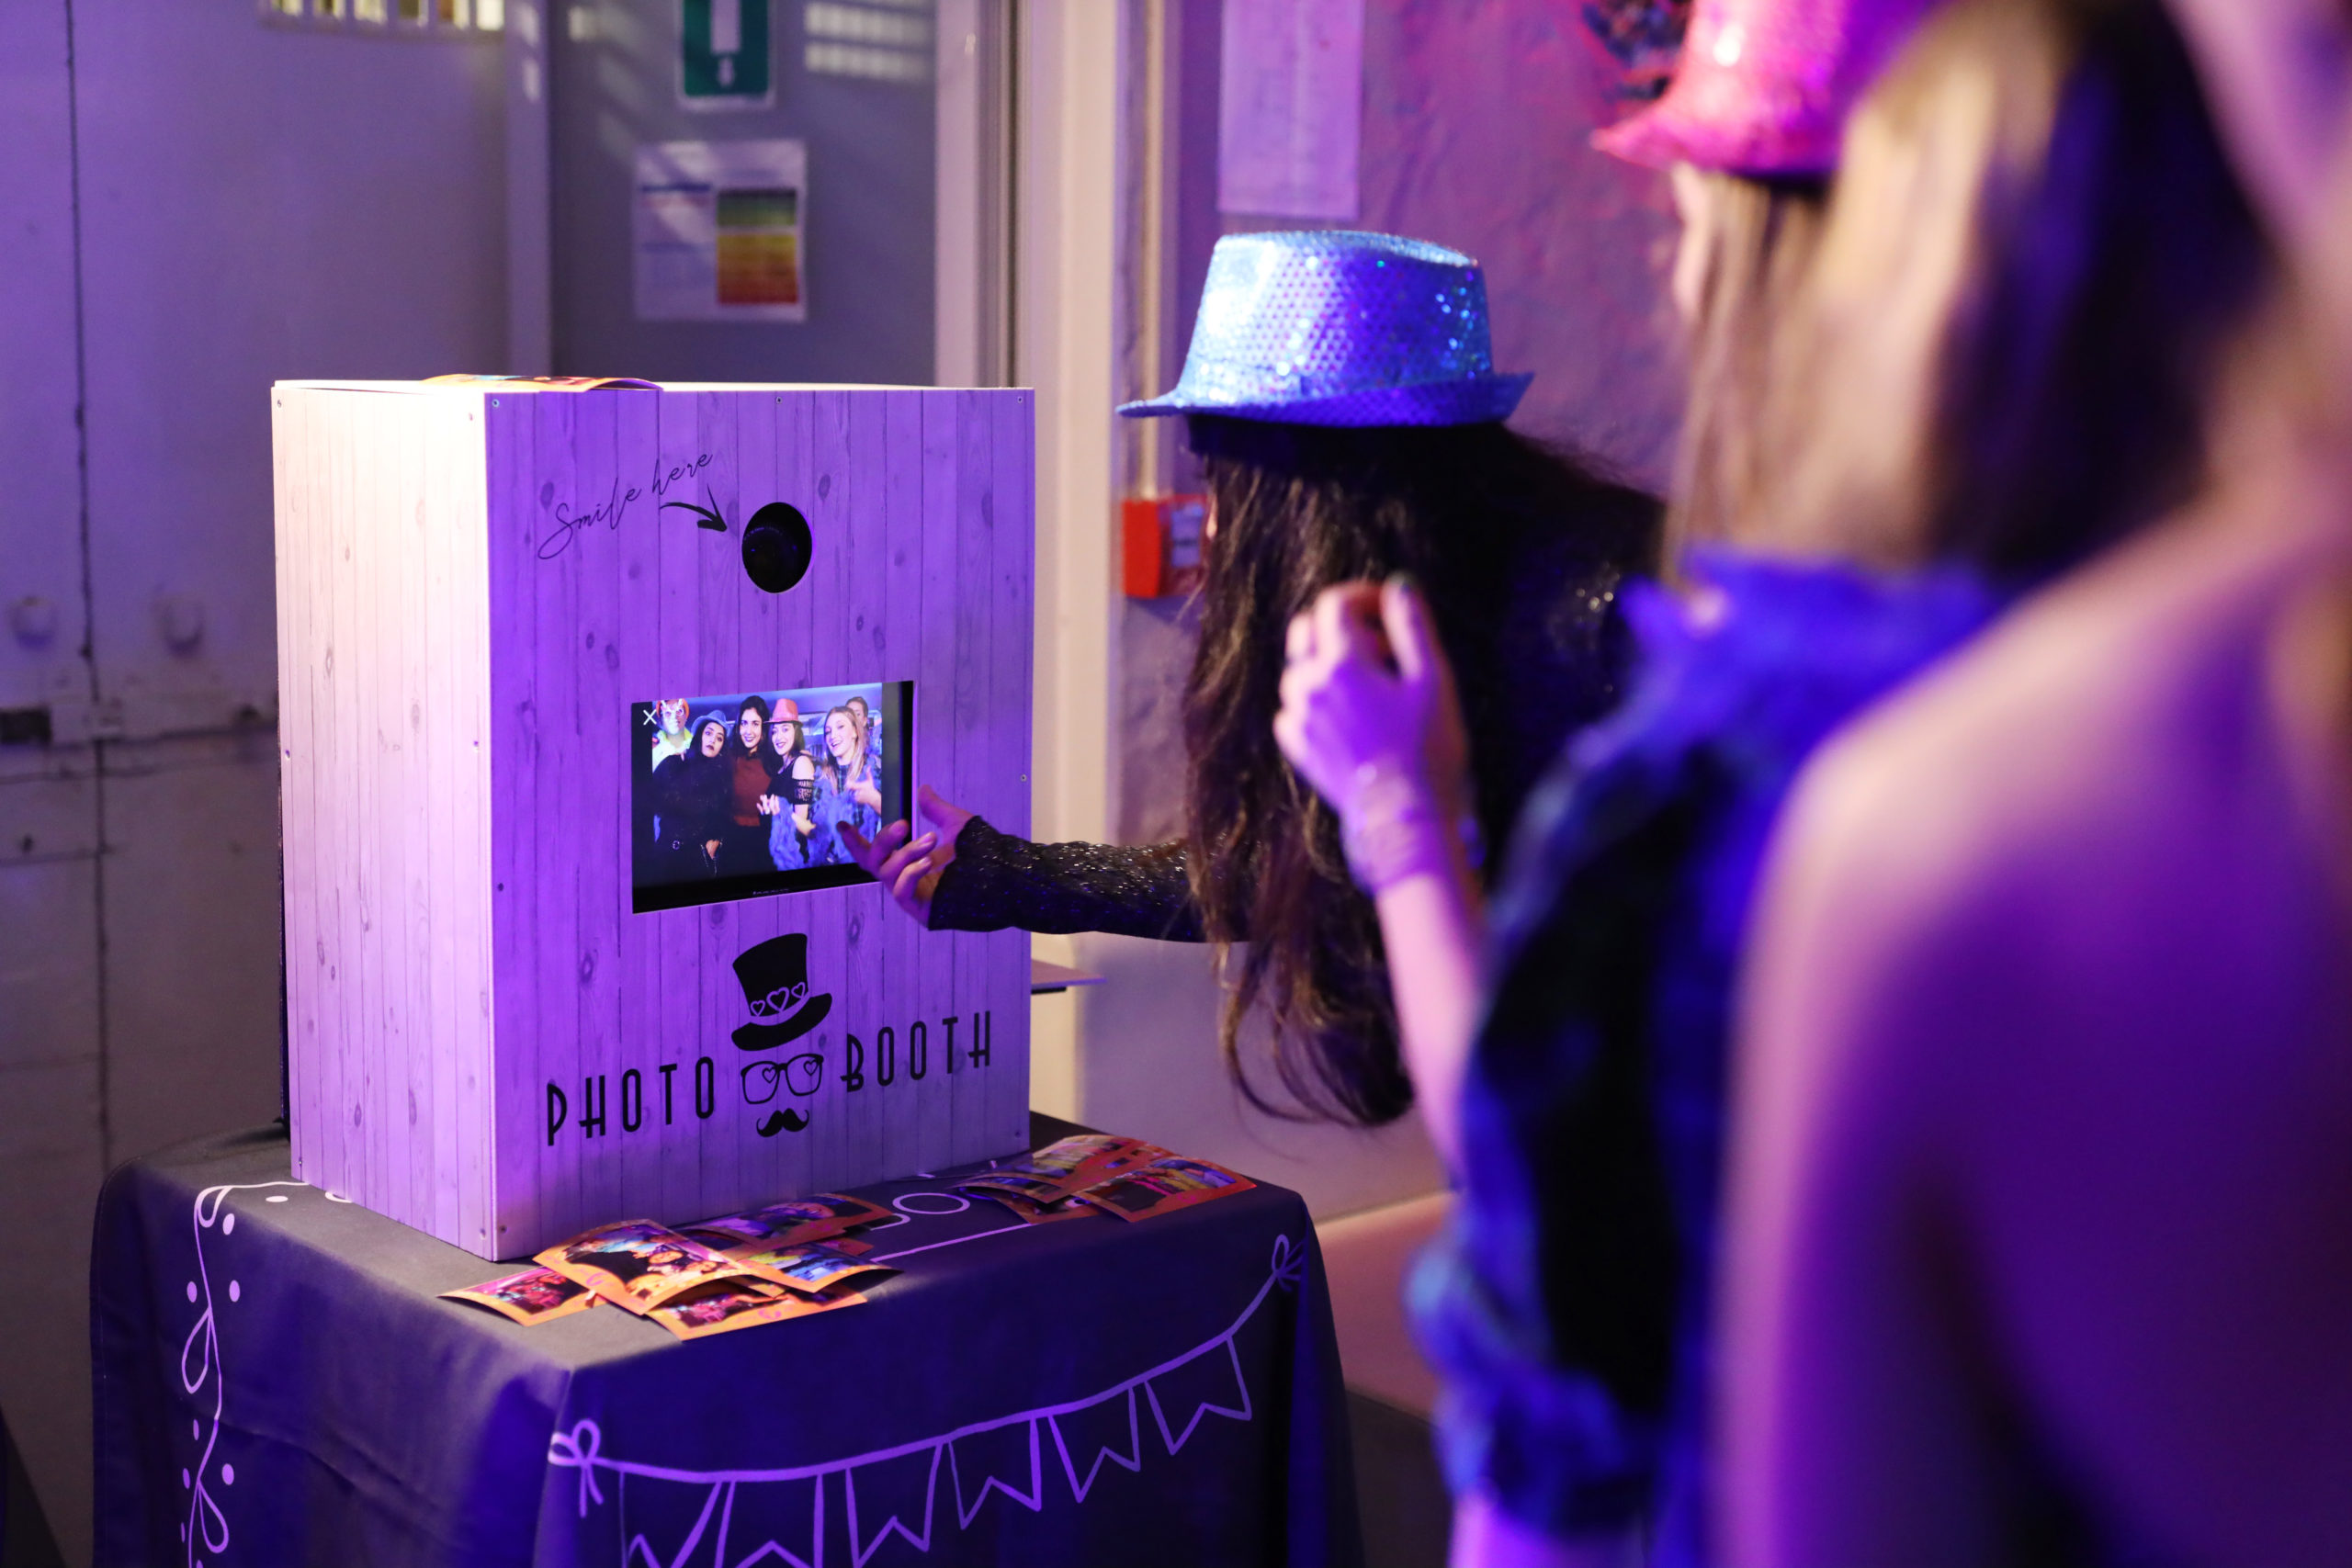 photo_booth per feste e party a grosseto